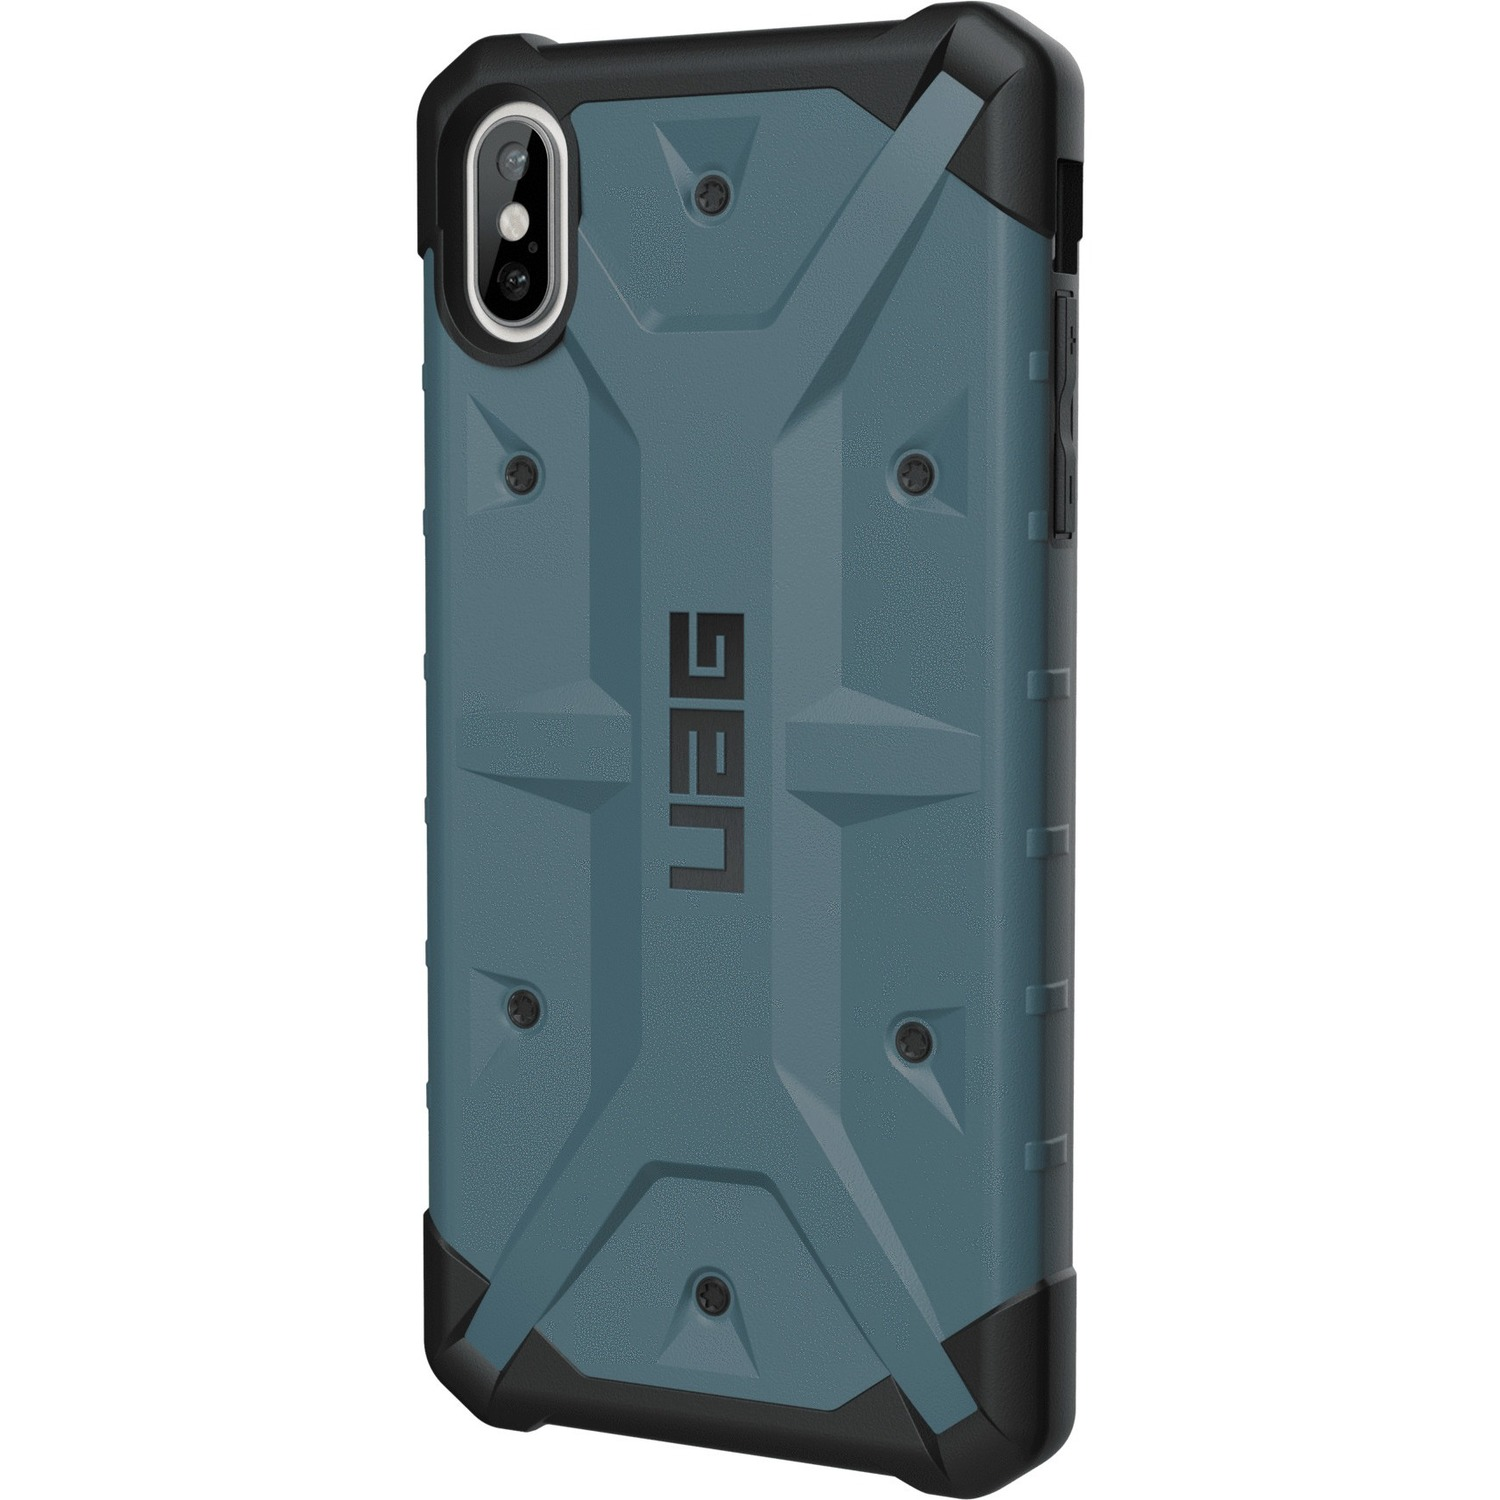 Urban Armor Gear Pathfinder Series iPhone Xs Max Case - For Apple iPhone XS Max Smartphone - Slate - Impact Resistant, Scratch Resistant, Drop Resistant